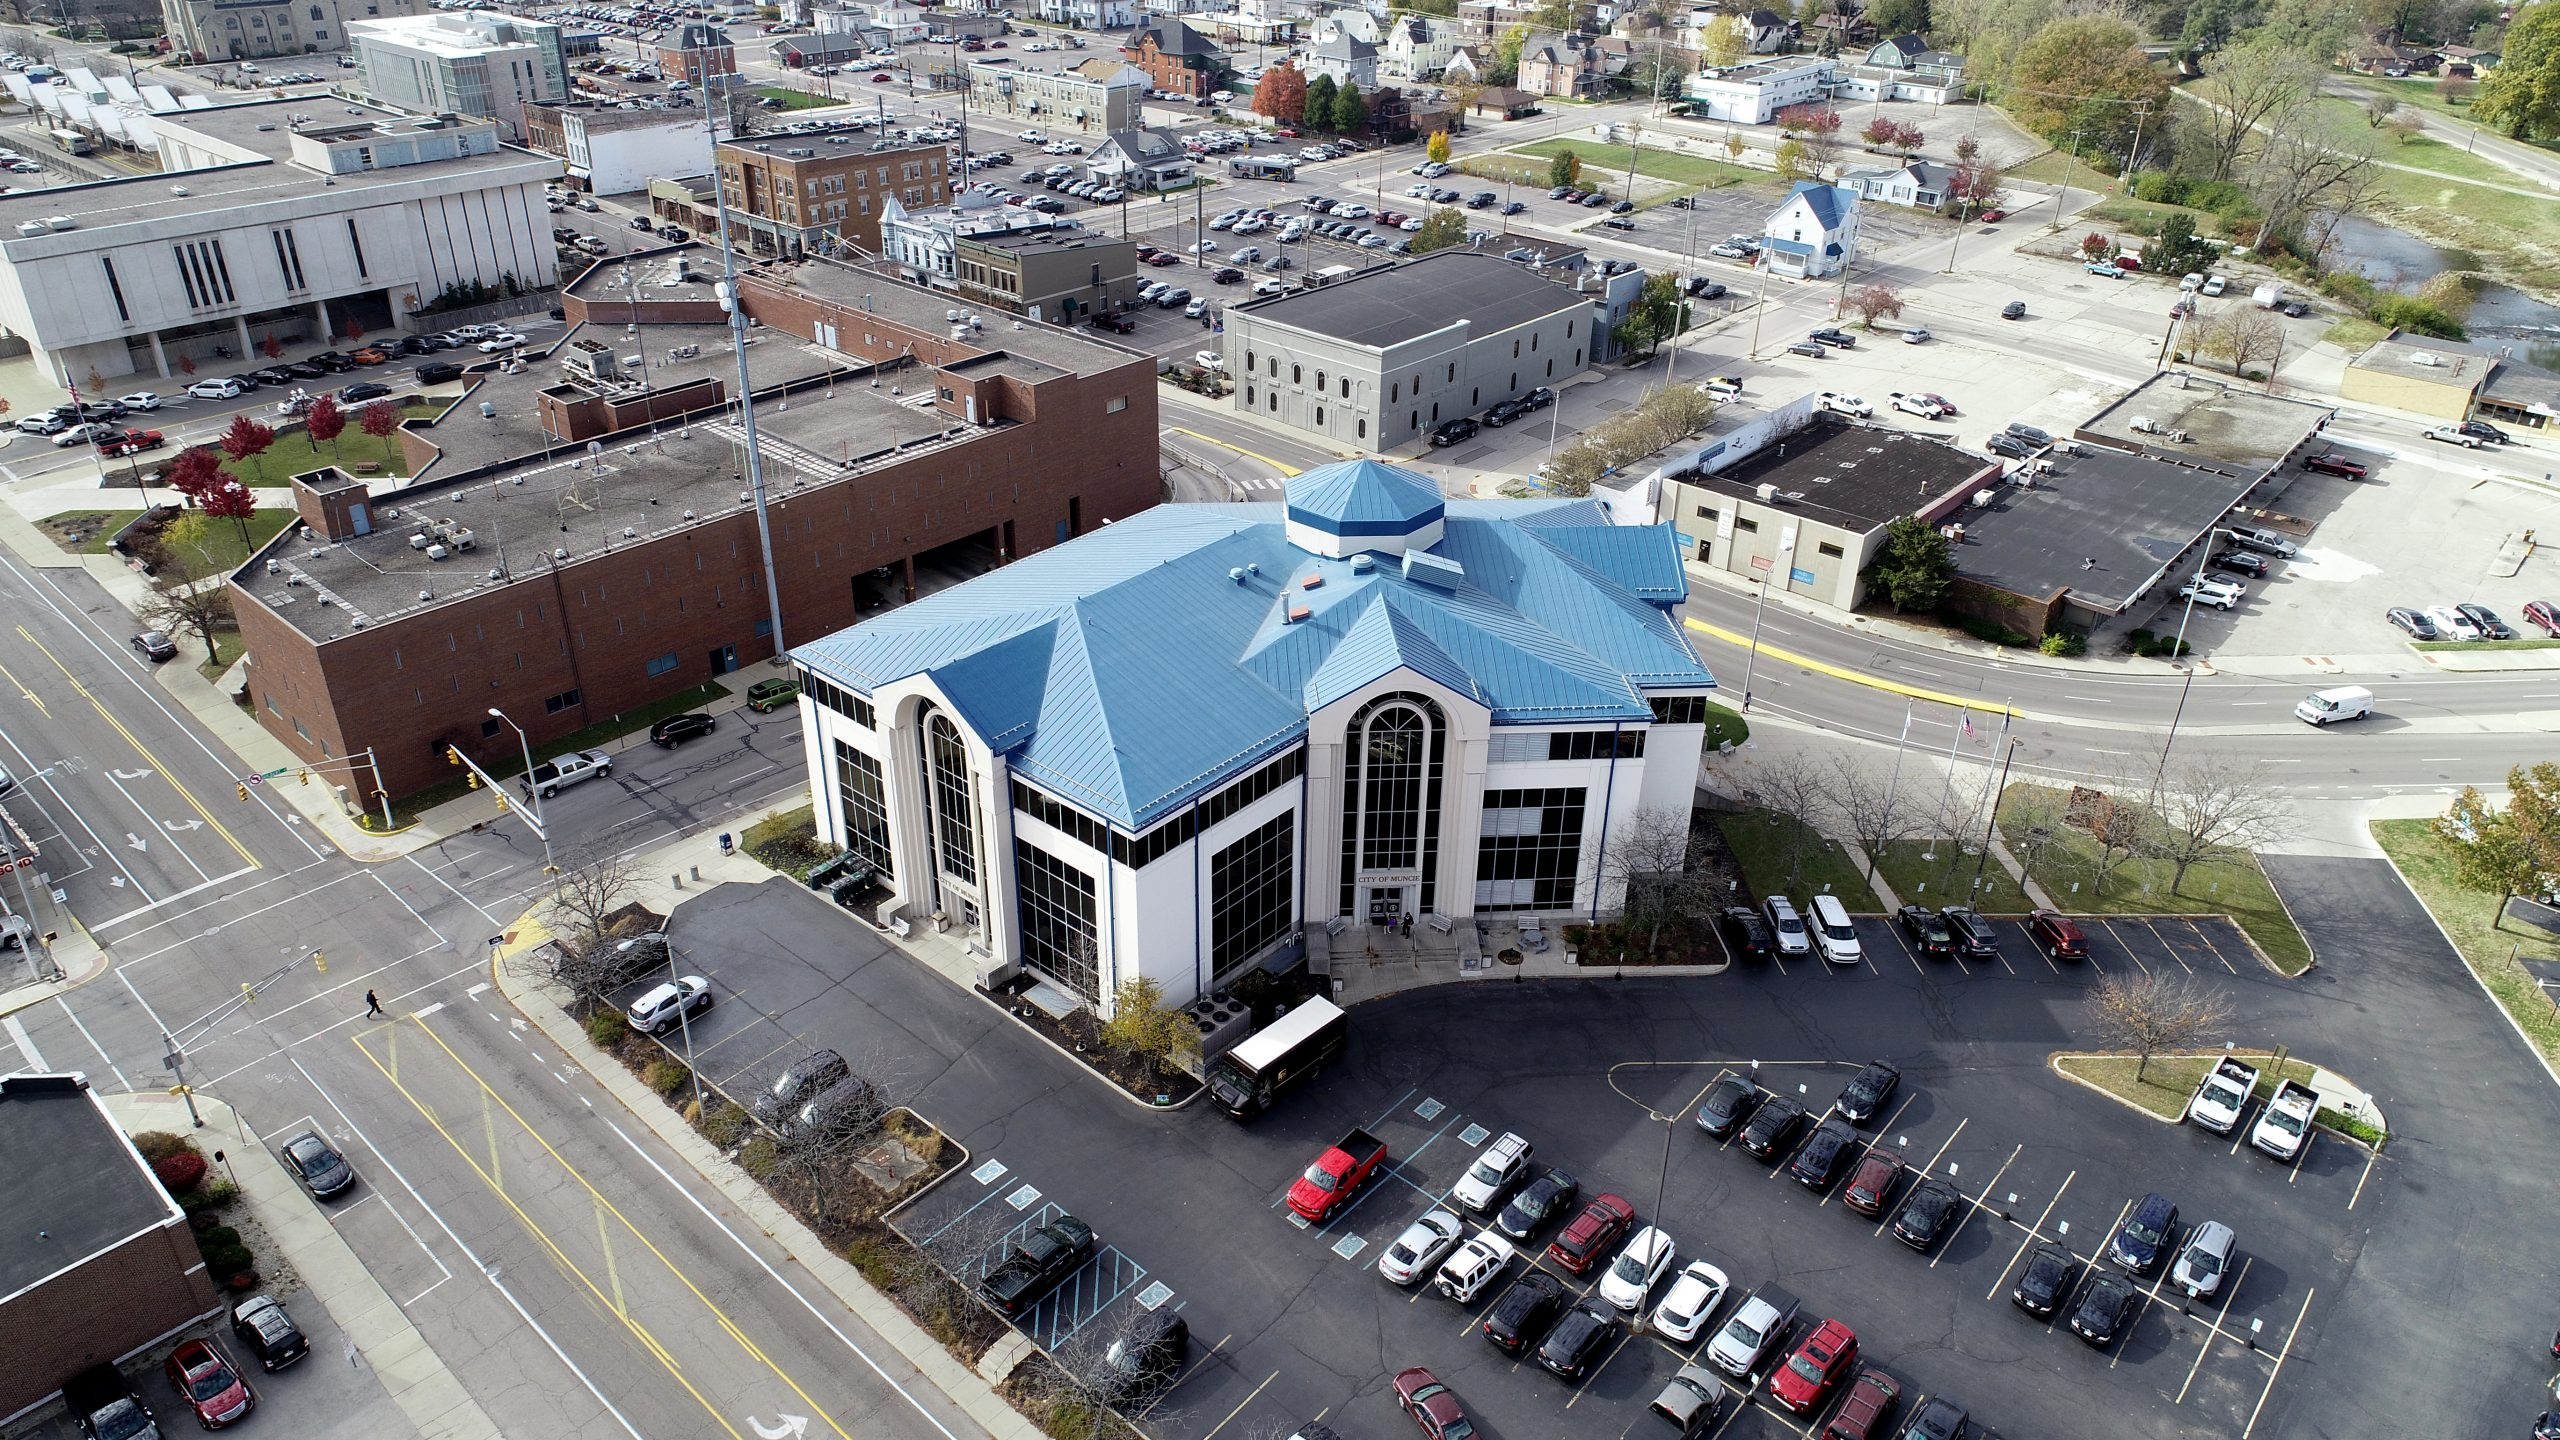 Muncie City hall commercial roofing project by ce reeve roofing in Indiana